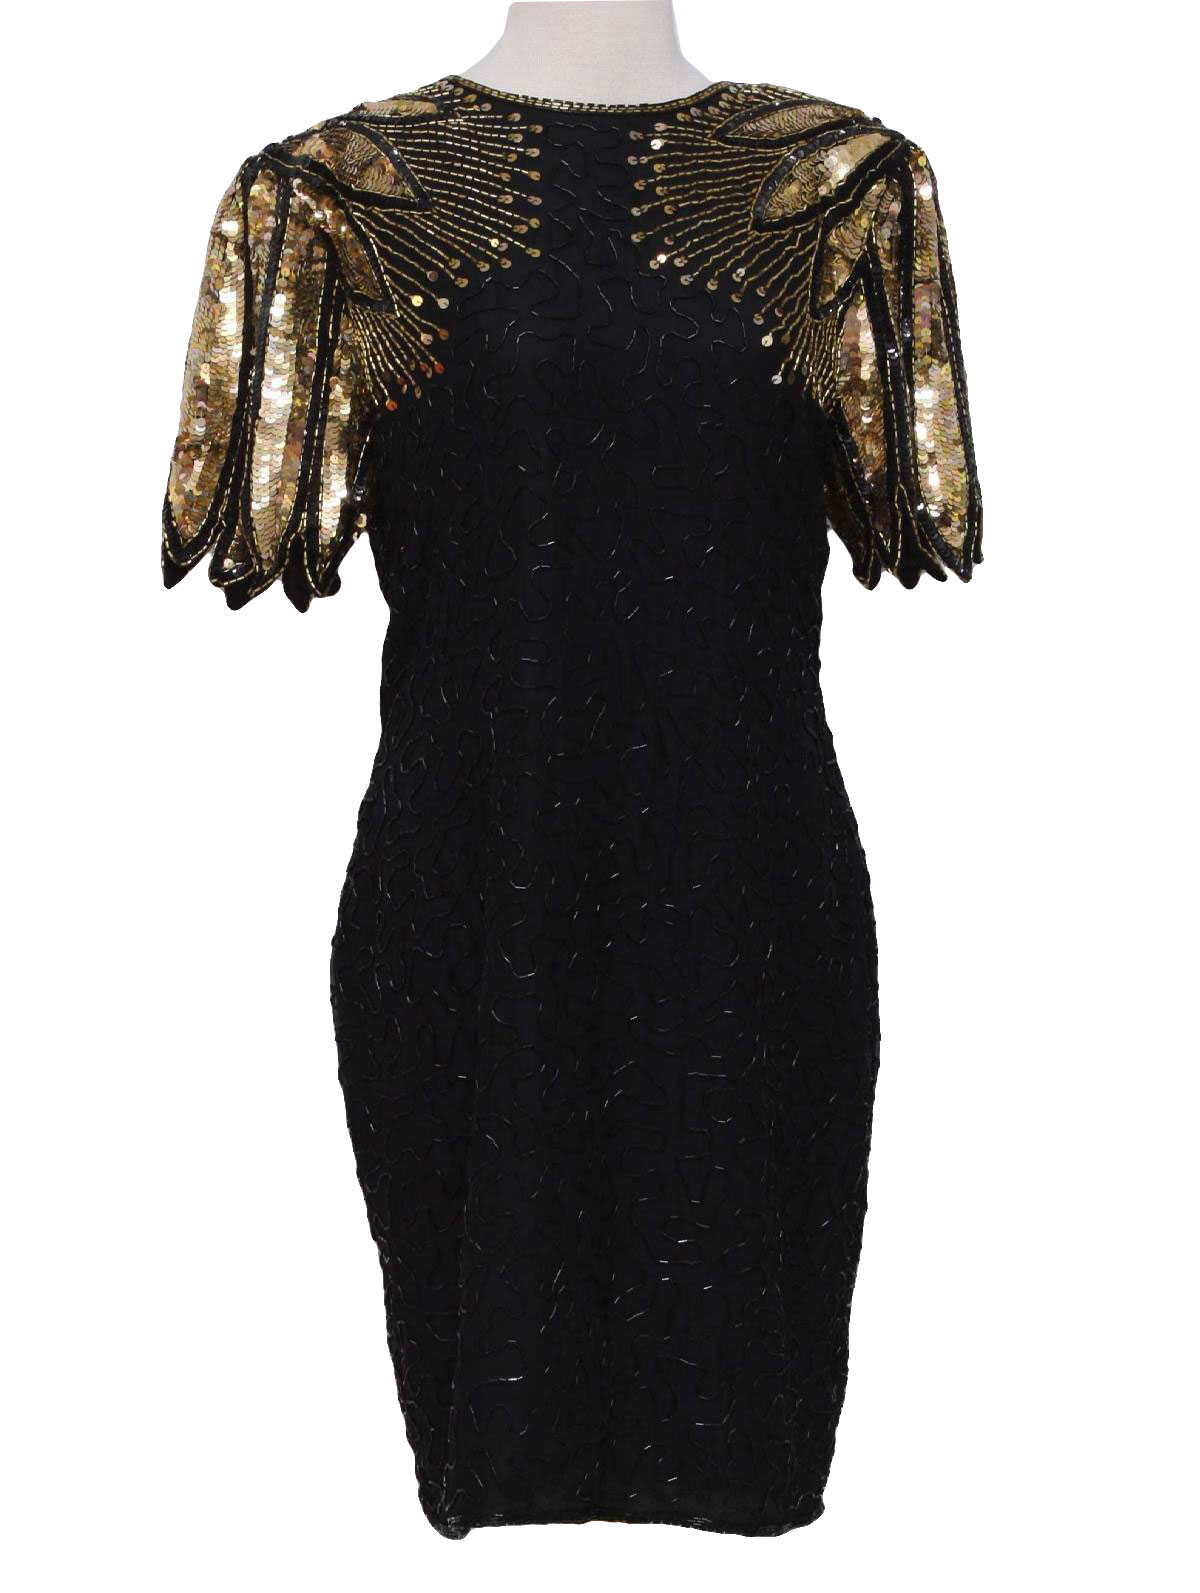 Womens black background silk, polyester lined mid length, short sleeve totally 80s cocktail dress with thick shoulder pads, rounded neckline, tear drop style open back with hook tab closure above rear zip. dress has heavily beaded and sequins in gold and black with sharp leaf style design that evokes a butterflys wings along padded shoulders and down upper bodice. tight wiggle cut styling with rear slit along normally box cut hem.